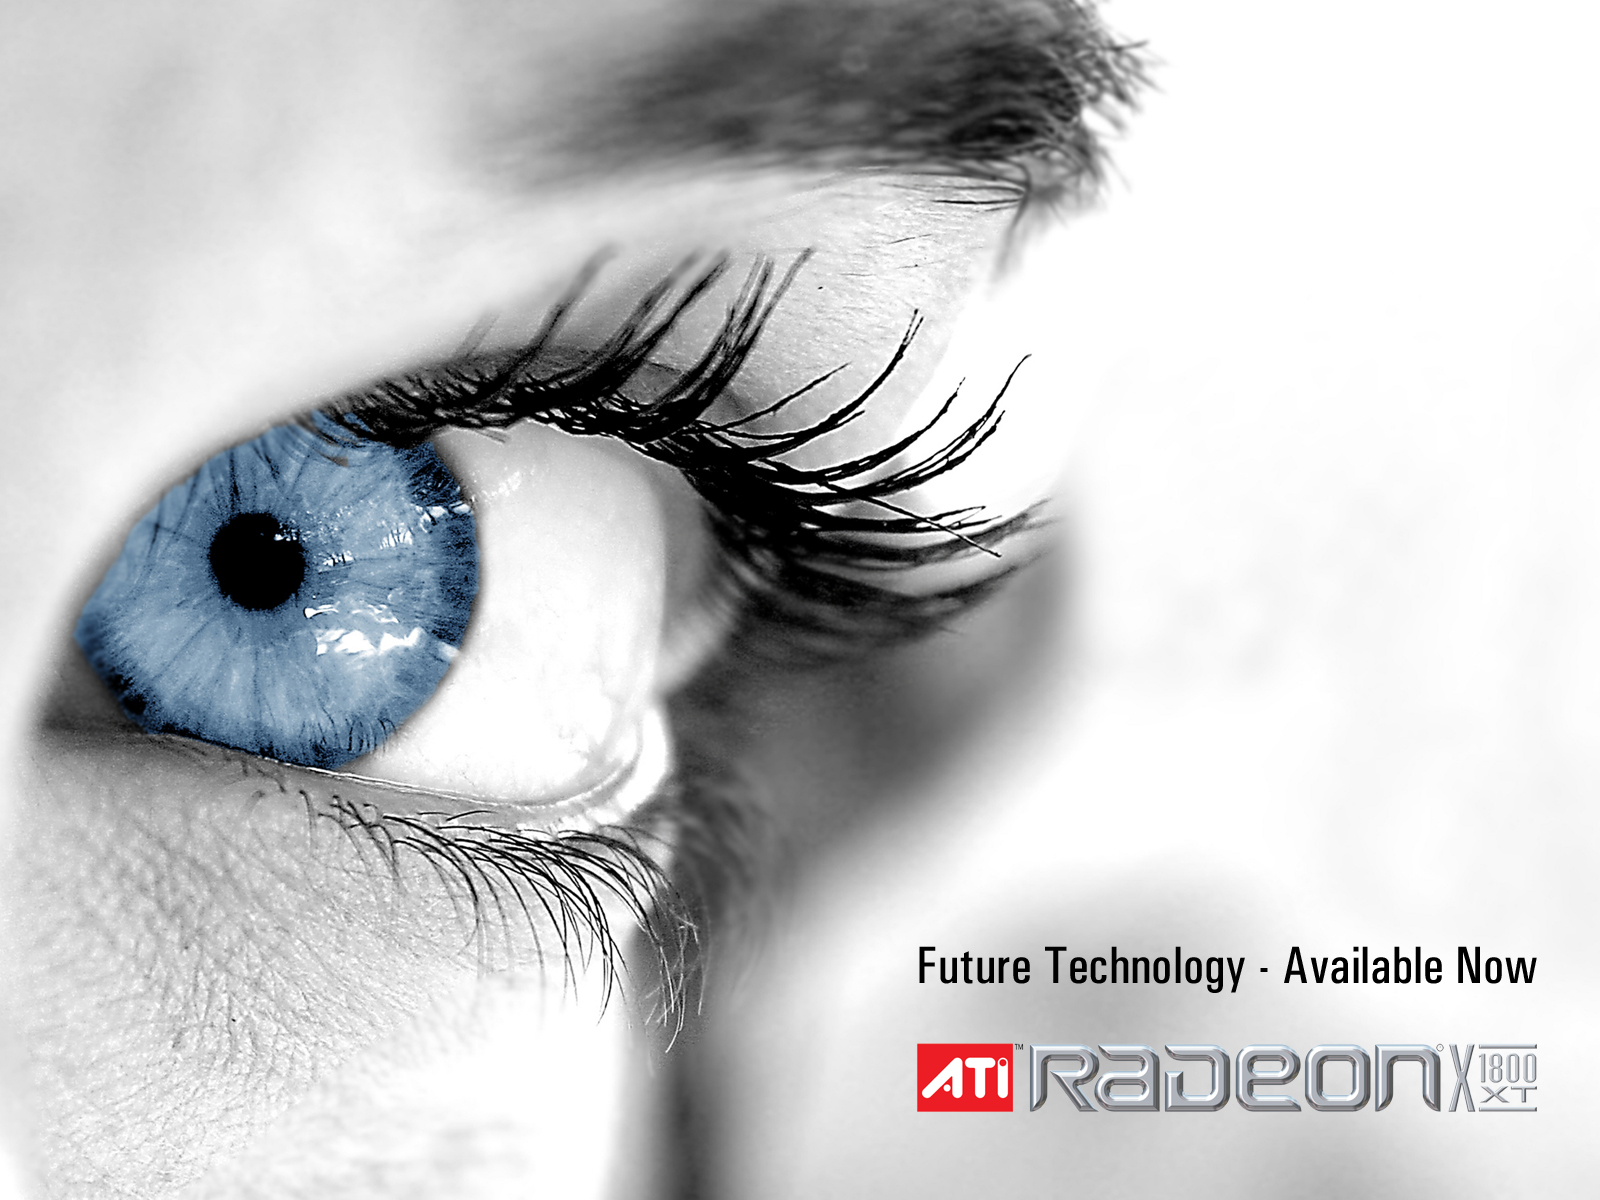 ati radeon future technology wallpapers | wallpapers hd